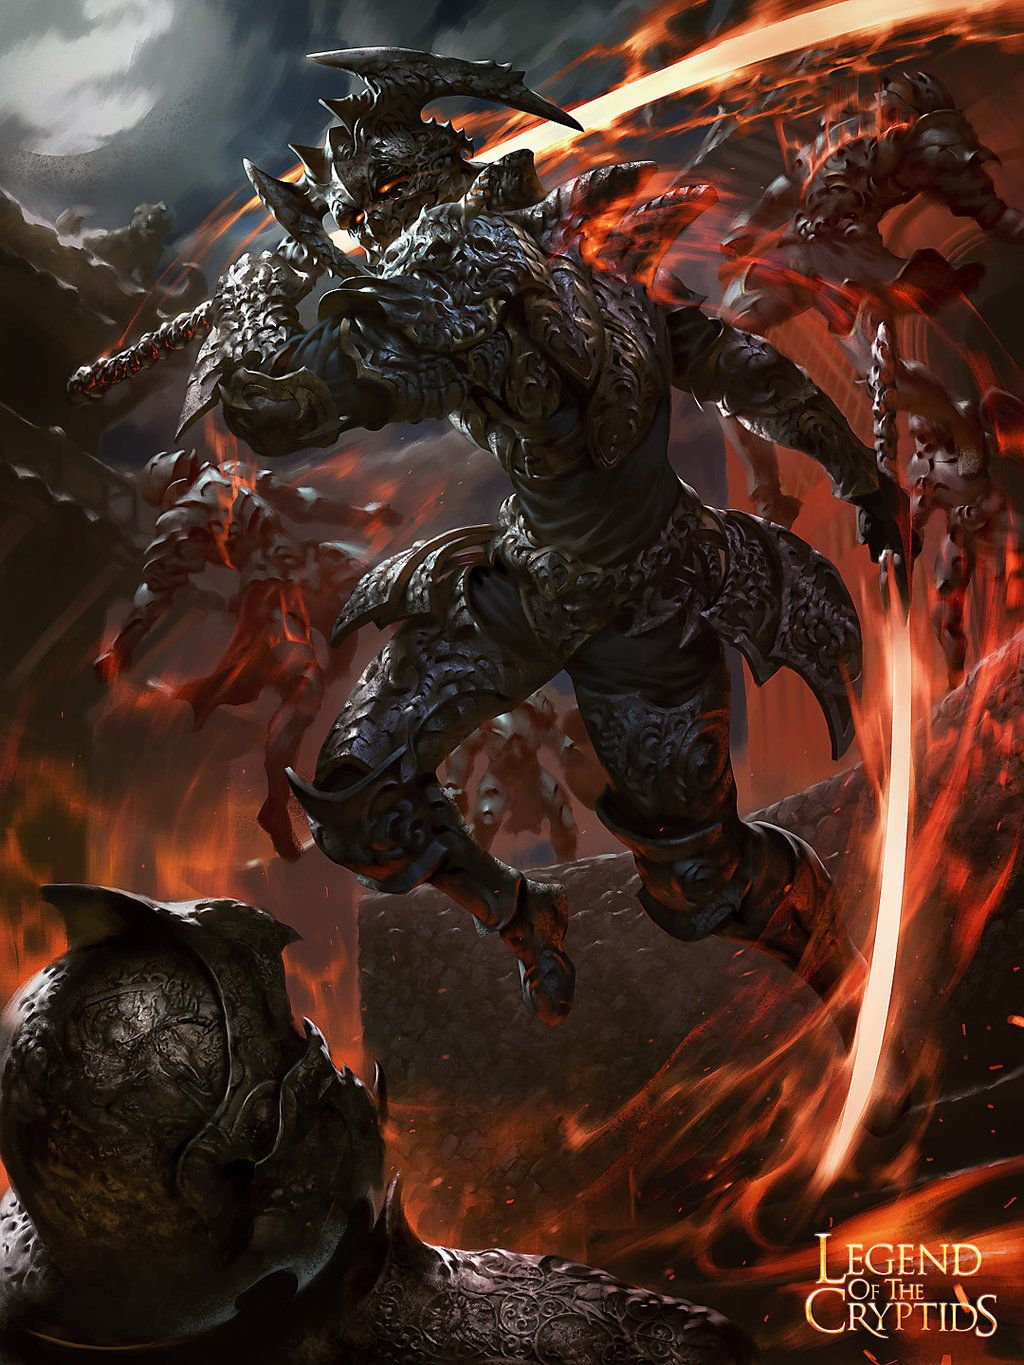 Nameless Warrior Brute - art for Legend of the Cryptids by